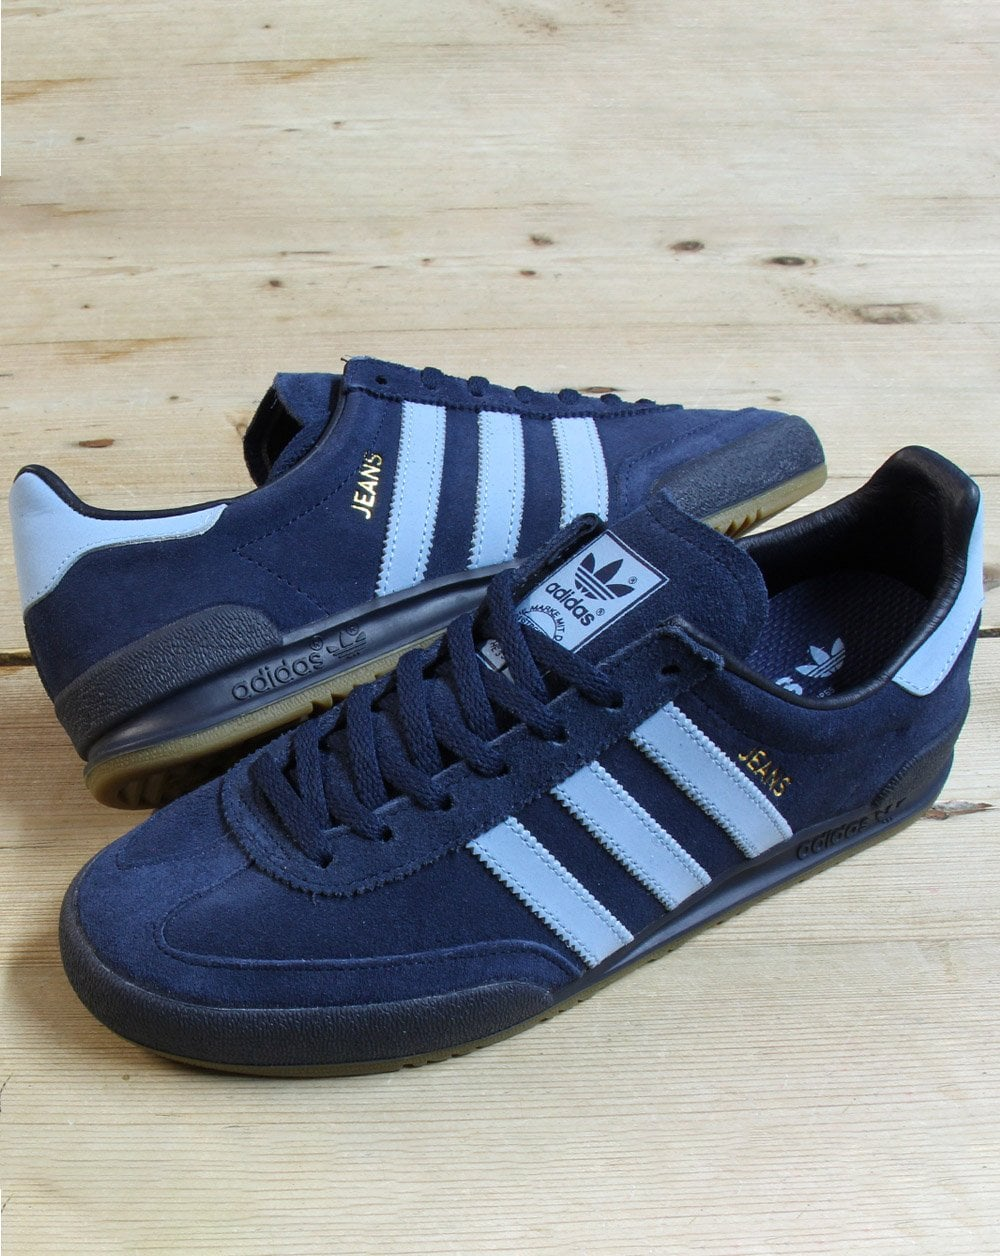 navy blue adidas trainers, OFF 78%,Cheap price!